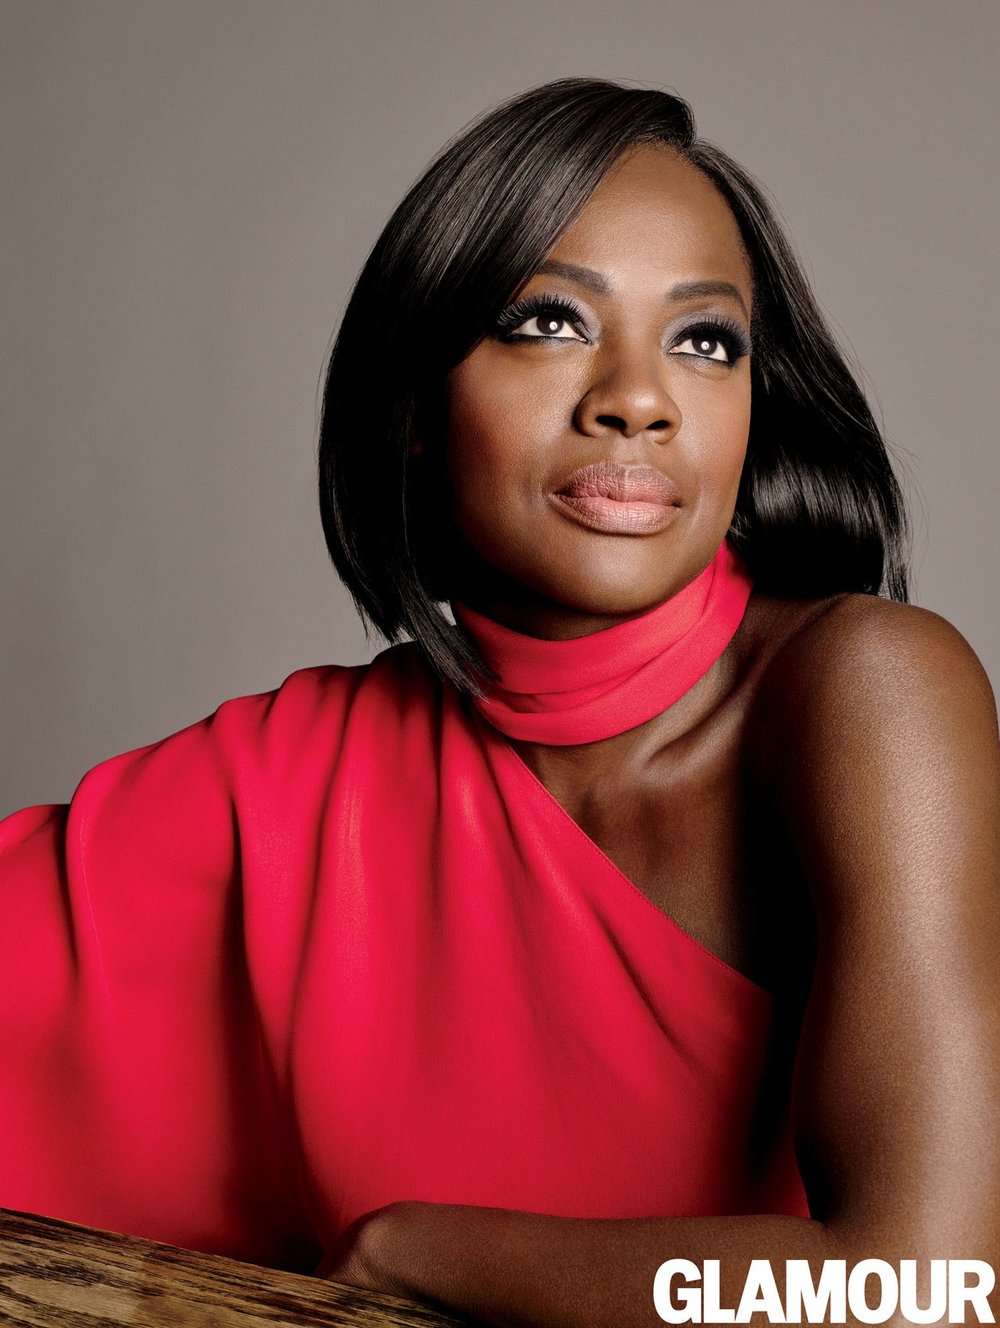 inspired-2015-03-viola-davis-watermark-main.jpg